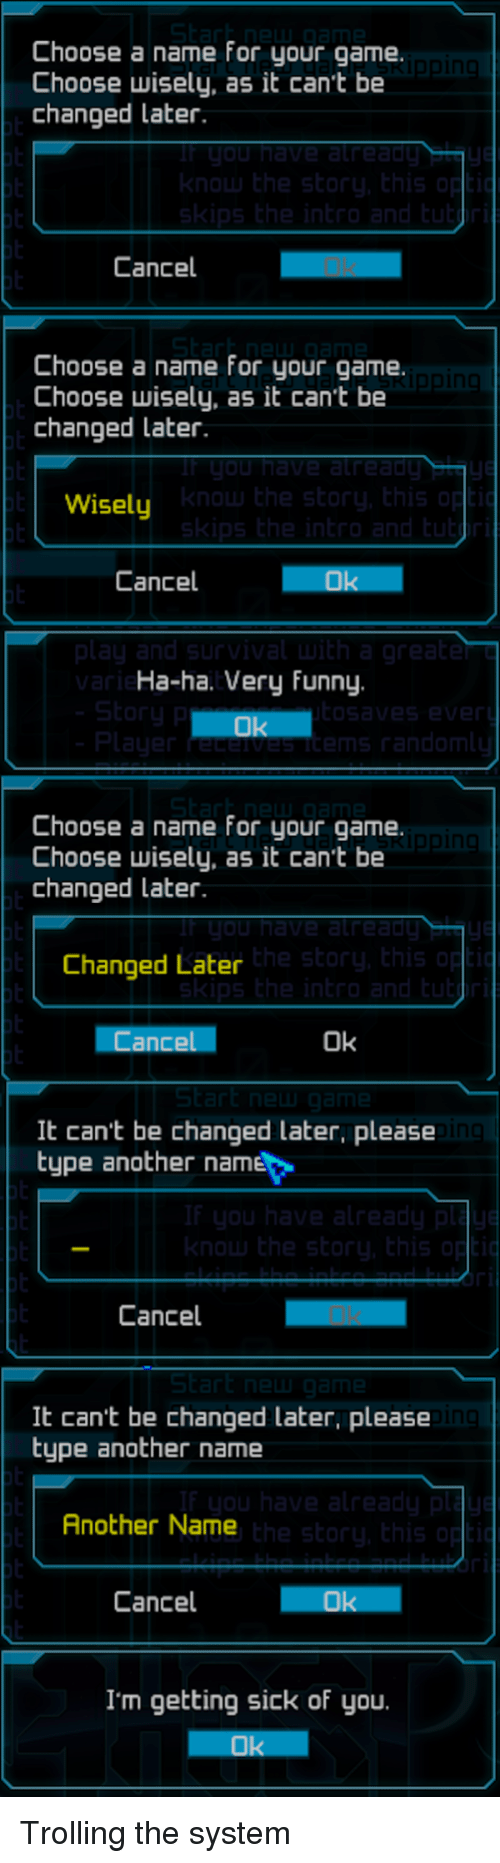 Funny, Trolling, and Game: Choose a name for your game.  Choose wisely, as it cant be  changed later  Cancel  Choose a name for your game.  Choose wisely, as it can't be  changed Later.  Wisely  Cancel  Ha-ha. Very Funny  Ok  Choose a name for your game.  Choose wisely, as it can't be  changed Later.  Changed Later  Cancel  Ok  It can't be changed later, please  type another name  Cancel  It can't be changed later, please  type another name  Another Name  ancel  I'm getting sick of you.